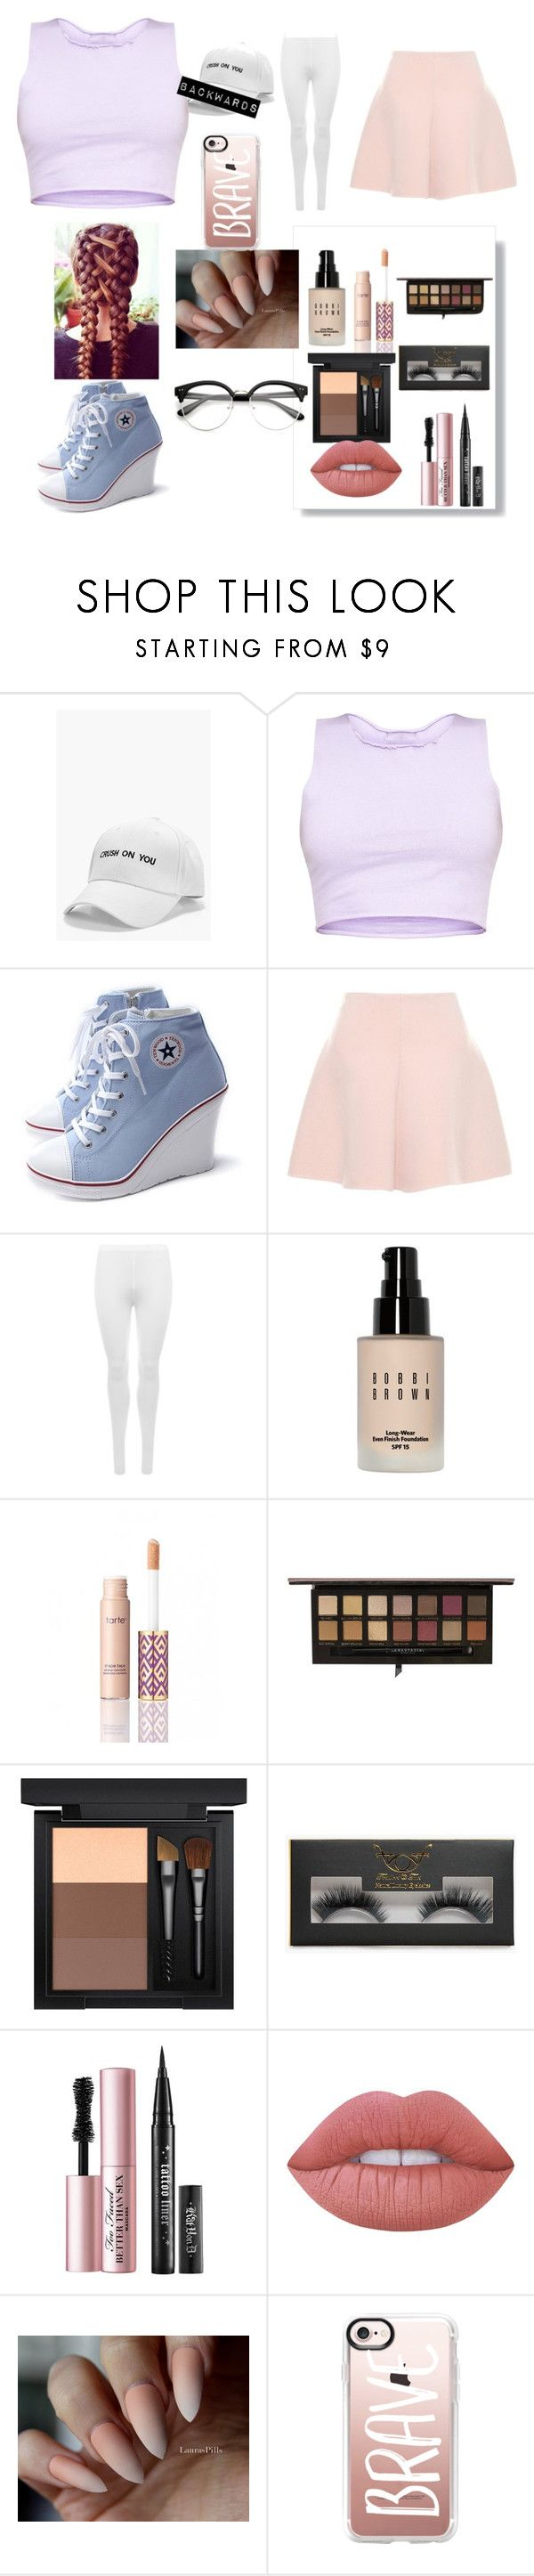 """""""Daddys Girl"""" by kiyakay7 ❤ liked on Polyvore featuring Boohoo, RED Valentino, WearAll, Bobbi Brown Cosmetics, tarte, Anastasia Beverly Hills, MAC Cosmetics, Too Faced Cosmetics, Lime Crime and Casetify"""